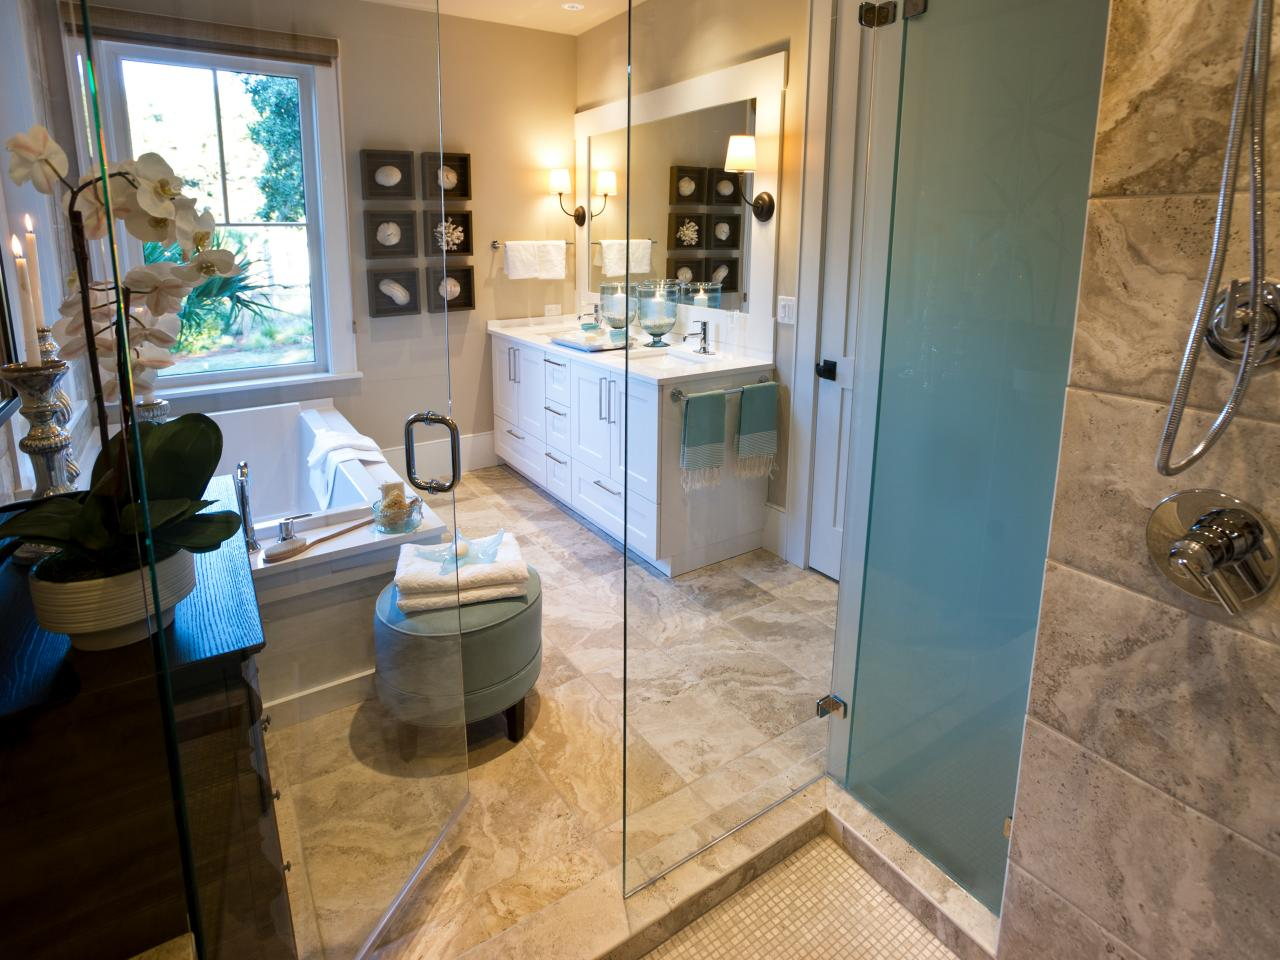 Hgtv dream home 2013 master bathroom pictures and video for Dream bathrooms